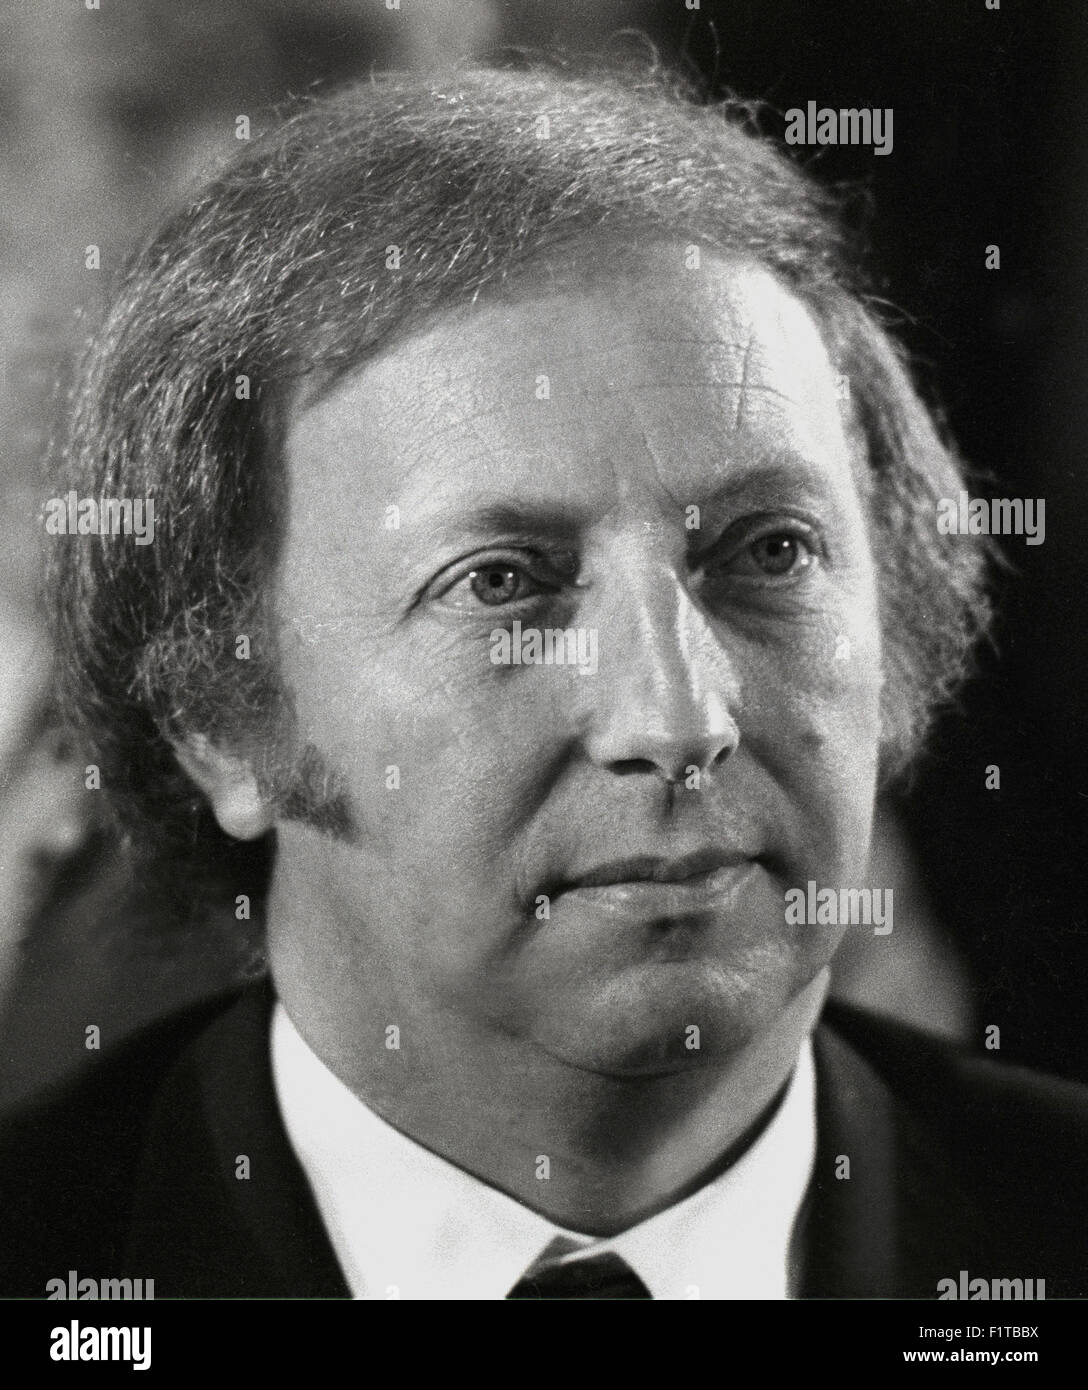 Arthur Scargill is a British politician and trade unionist who was president of the National Union of Mineworkers - Stock Image